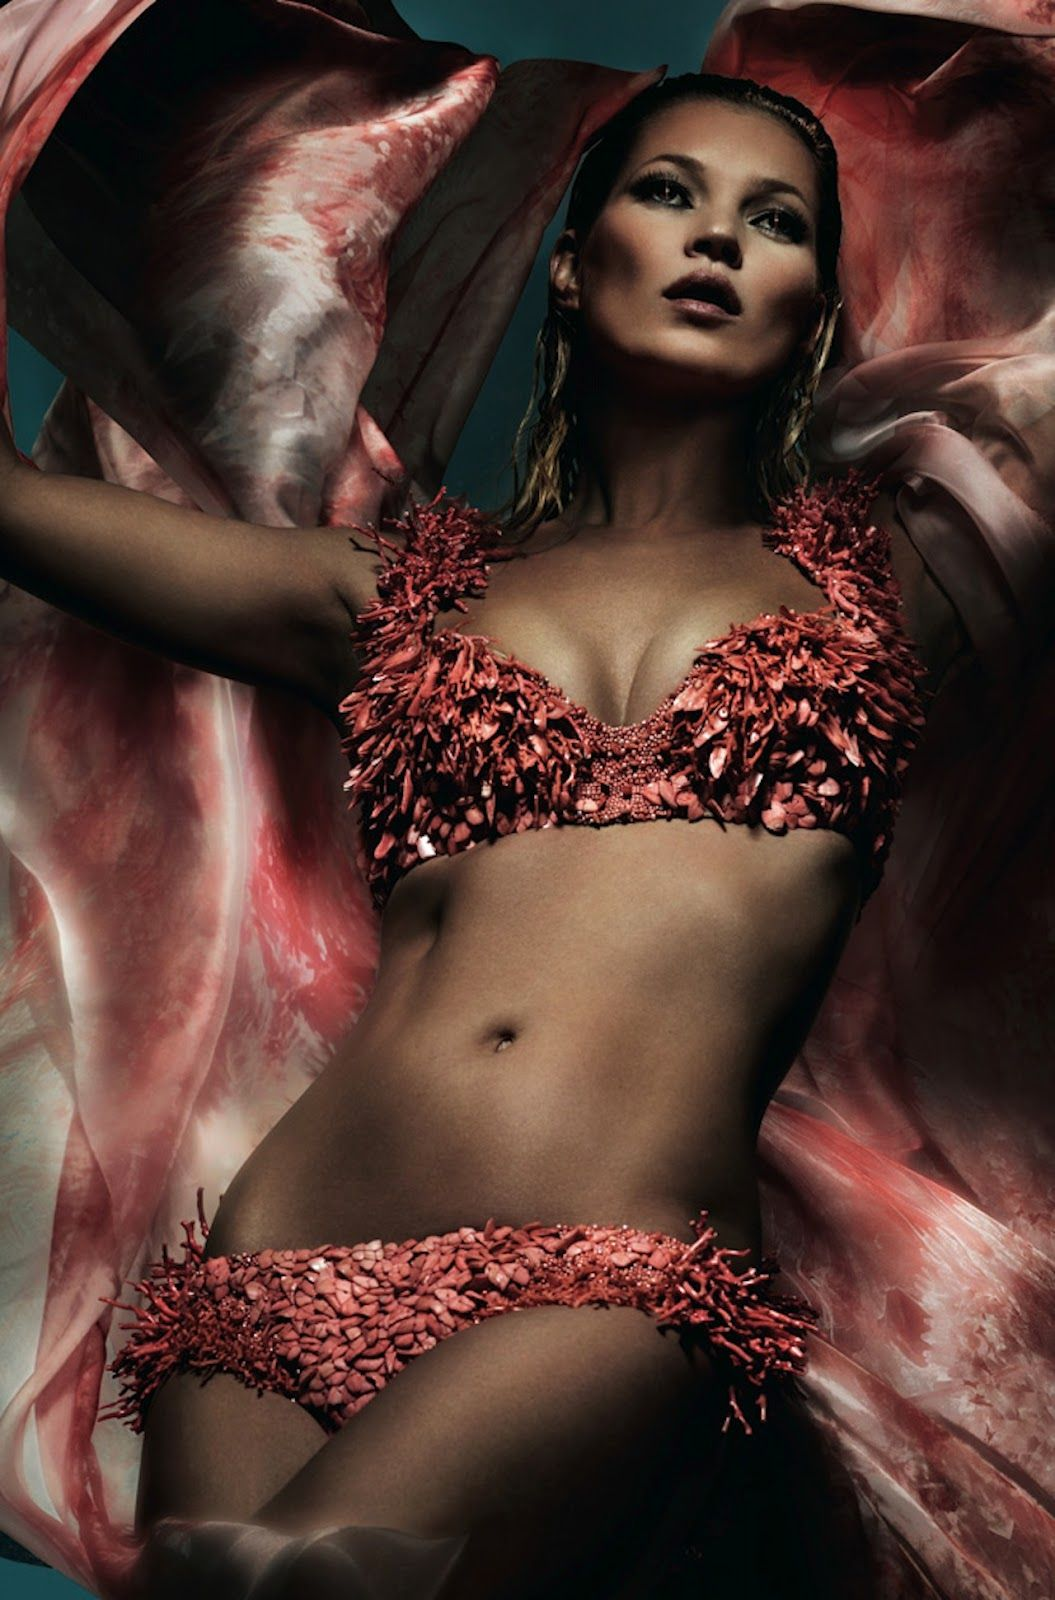 Kate moss another man ss 2012 by nick knight mq photo shoot nudes (53 photo), Paparazzi Celebrity pictures